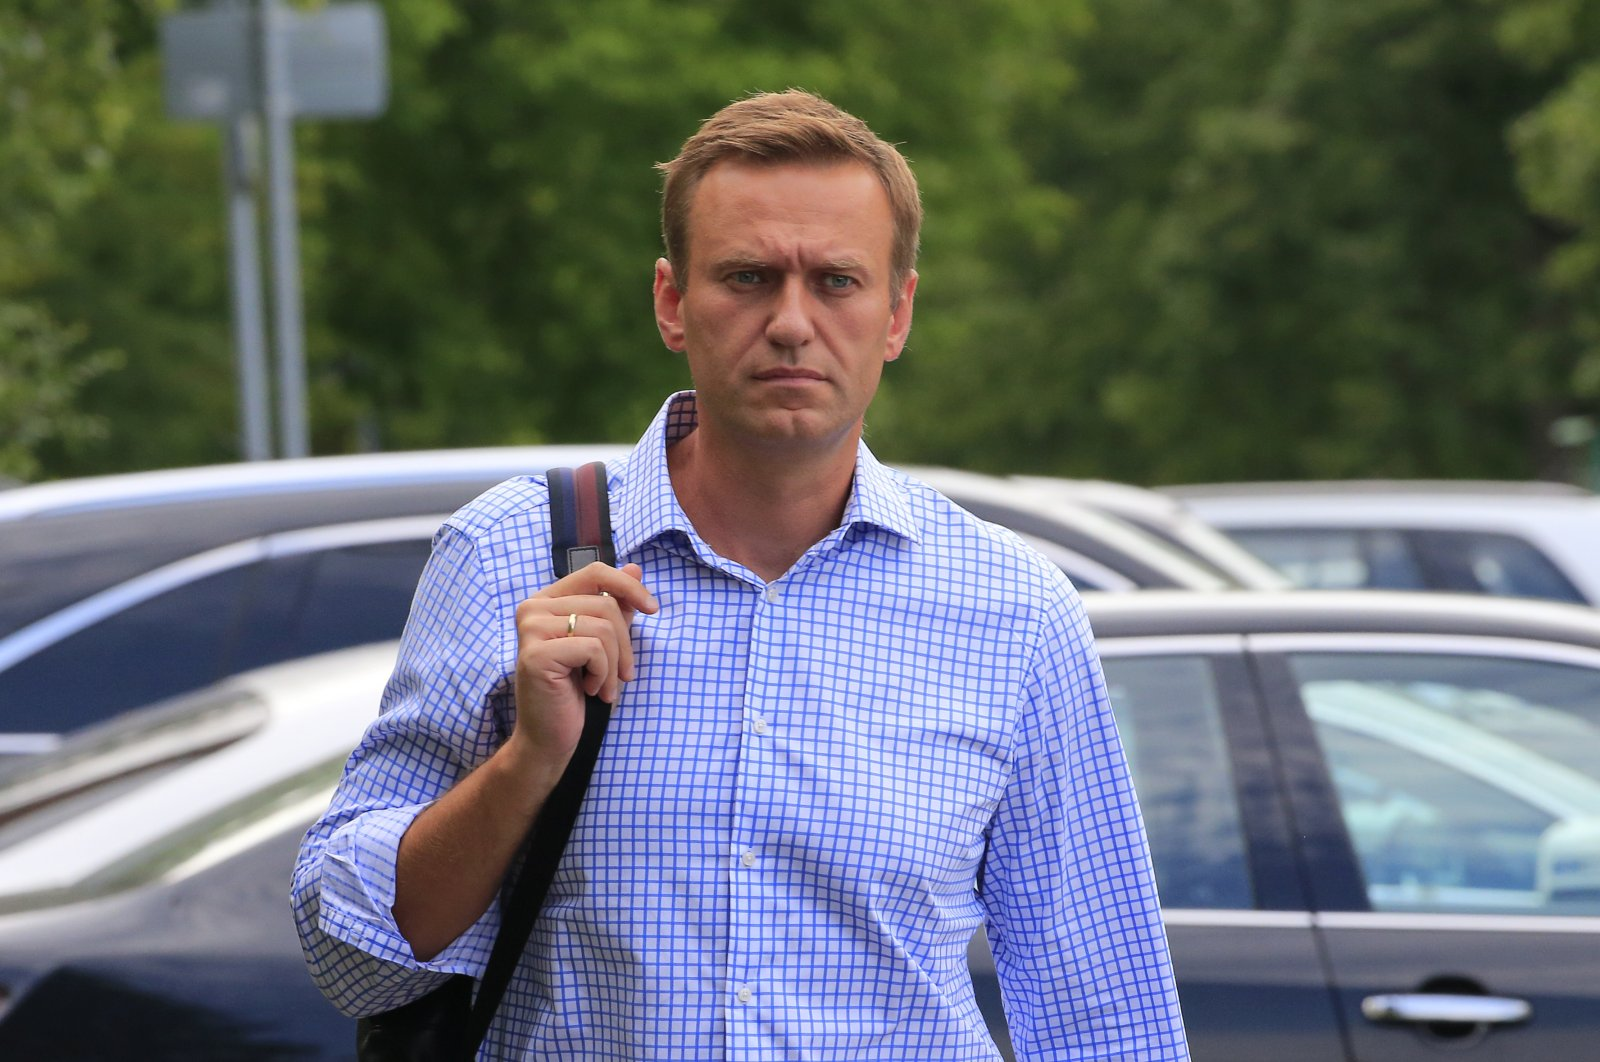 Russian opposition leader Alexei Navalny walks before a court hearing in Moscow, Russia, July 1, 2019. (Reuters Photo)